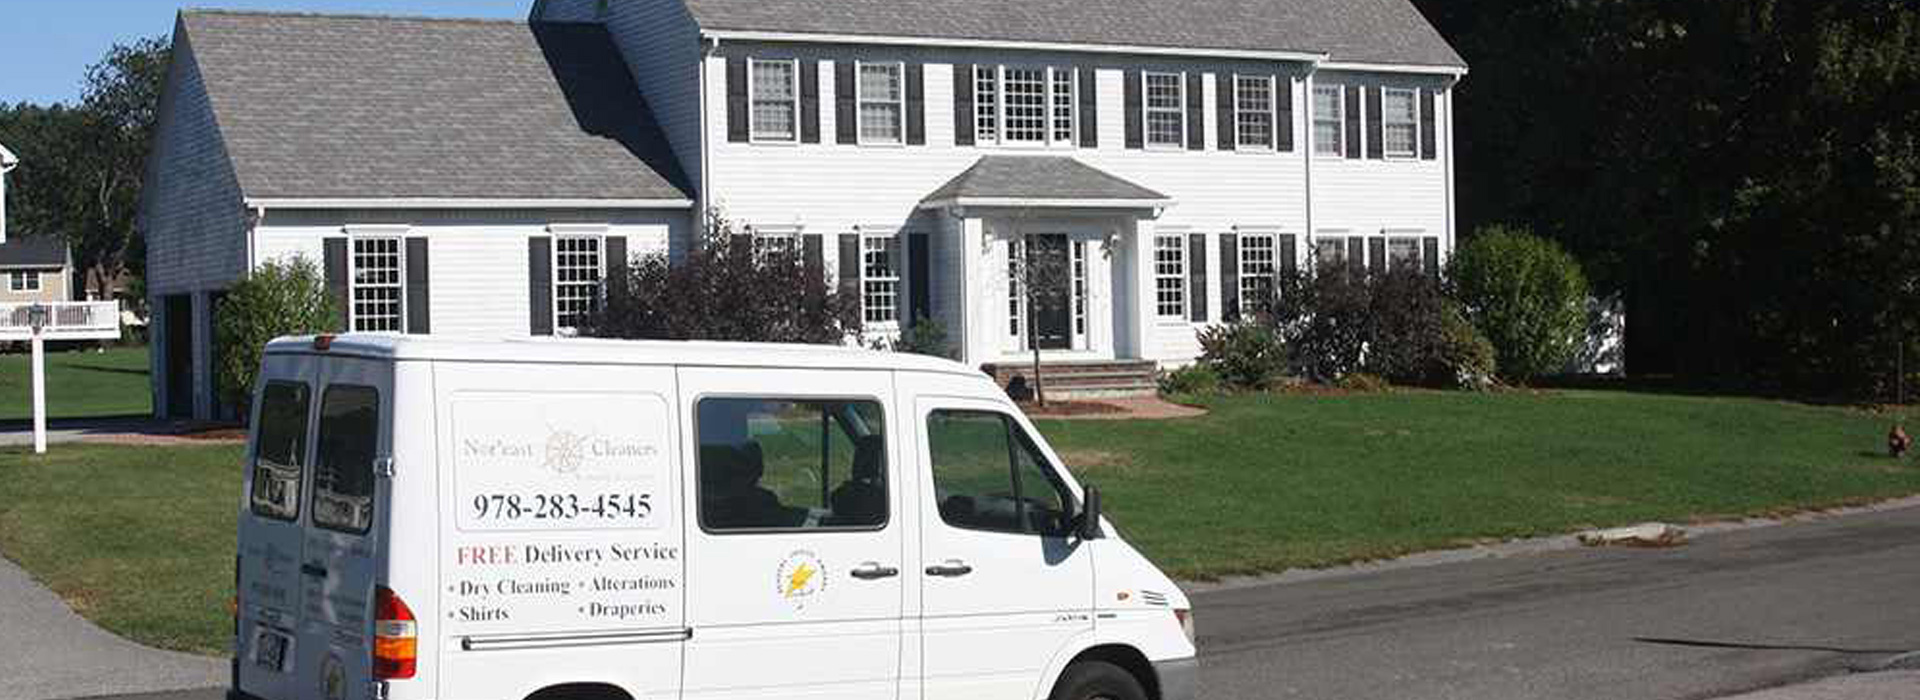 Noreast Cleaners reviews | Dry Cleaning at 6 Thatcher Road - Gloucester MA